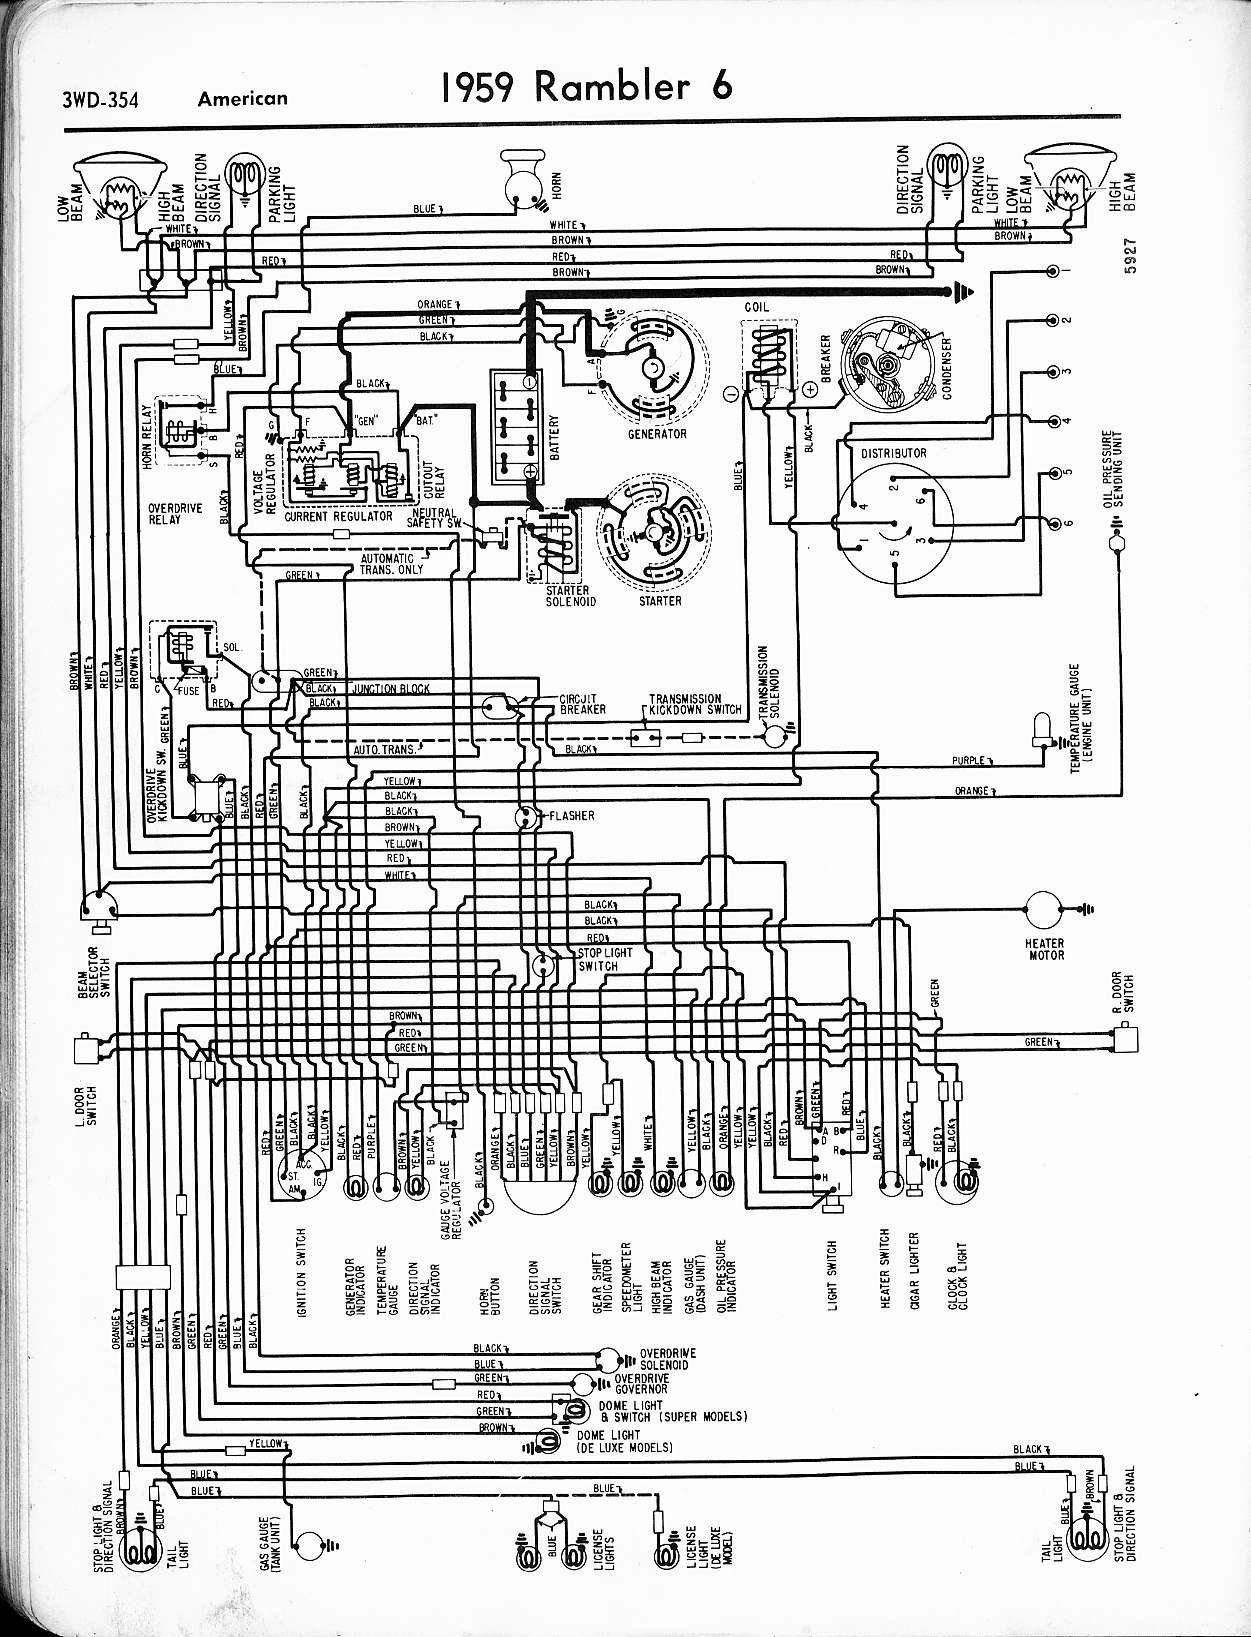 rambler wiring diagrams the old car manual project rh oldcarmanualproject com Basic Car Wiring Diagram Electric Club Car Wiring Diagram